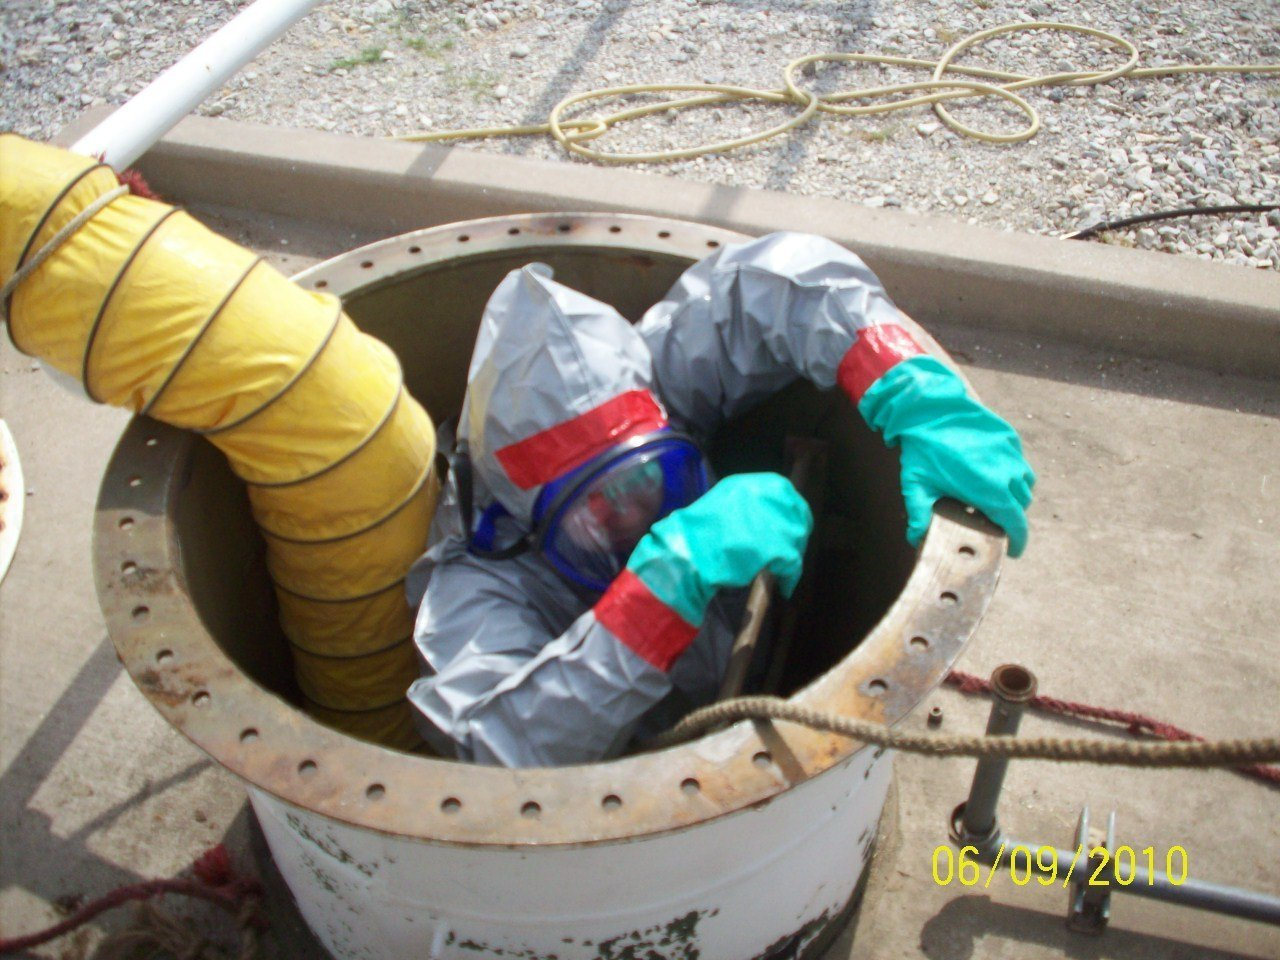 The Confined Space Initiative